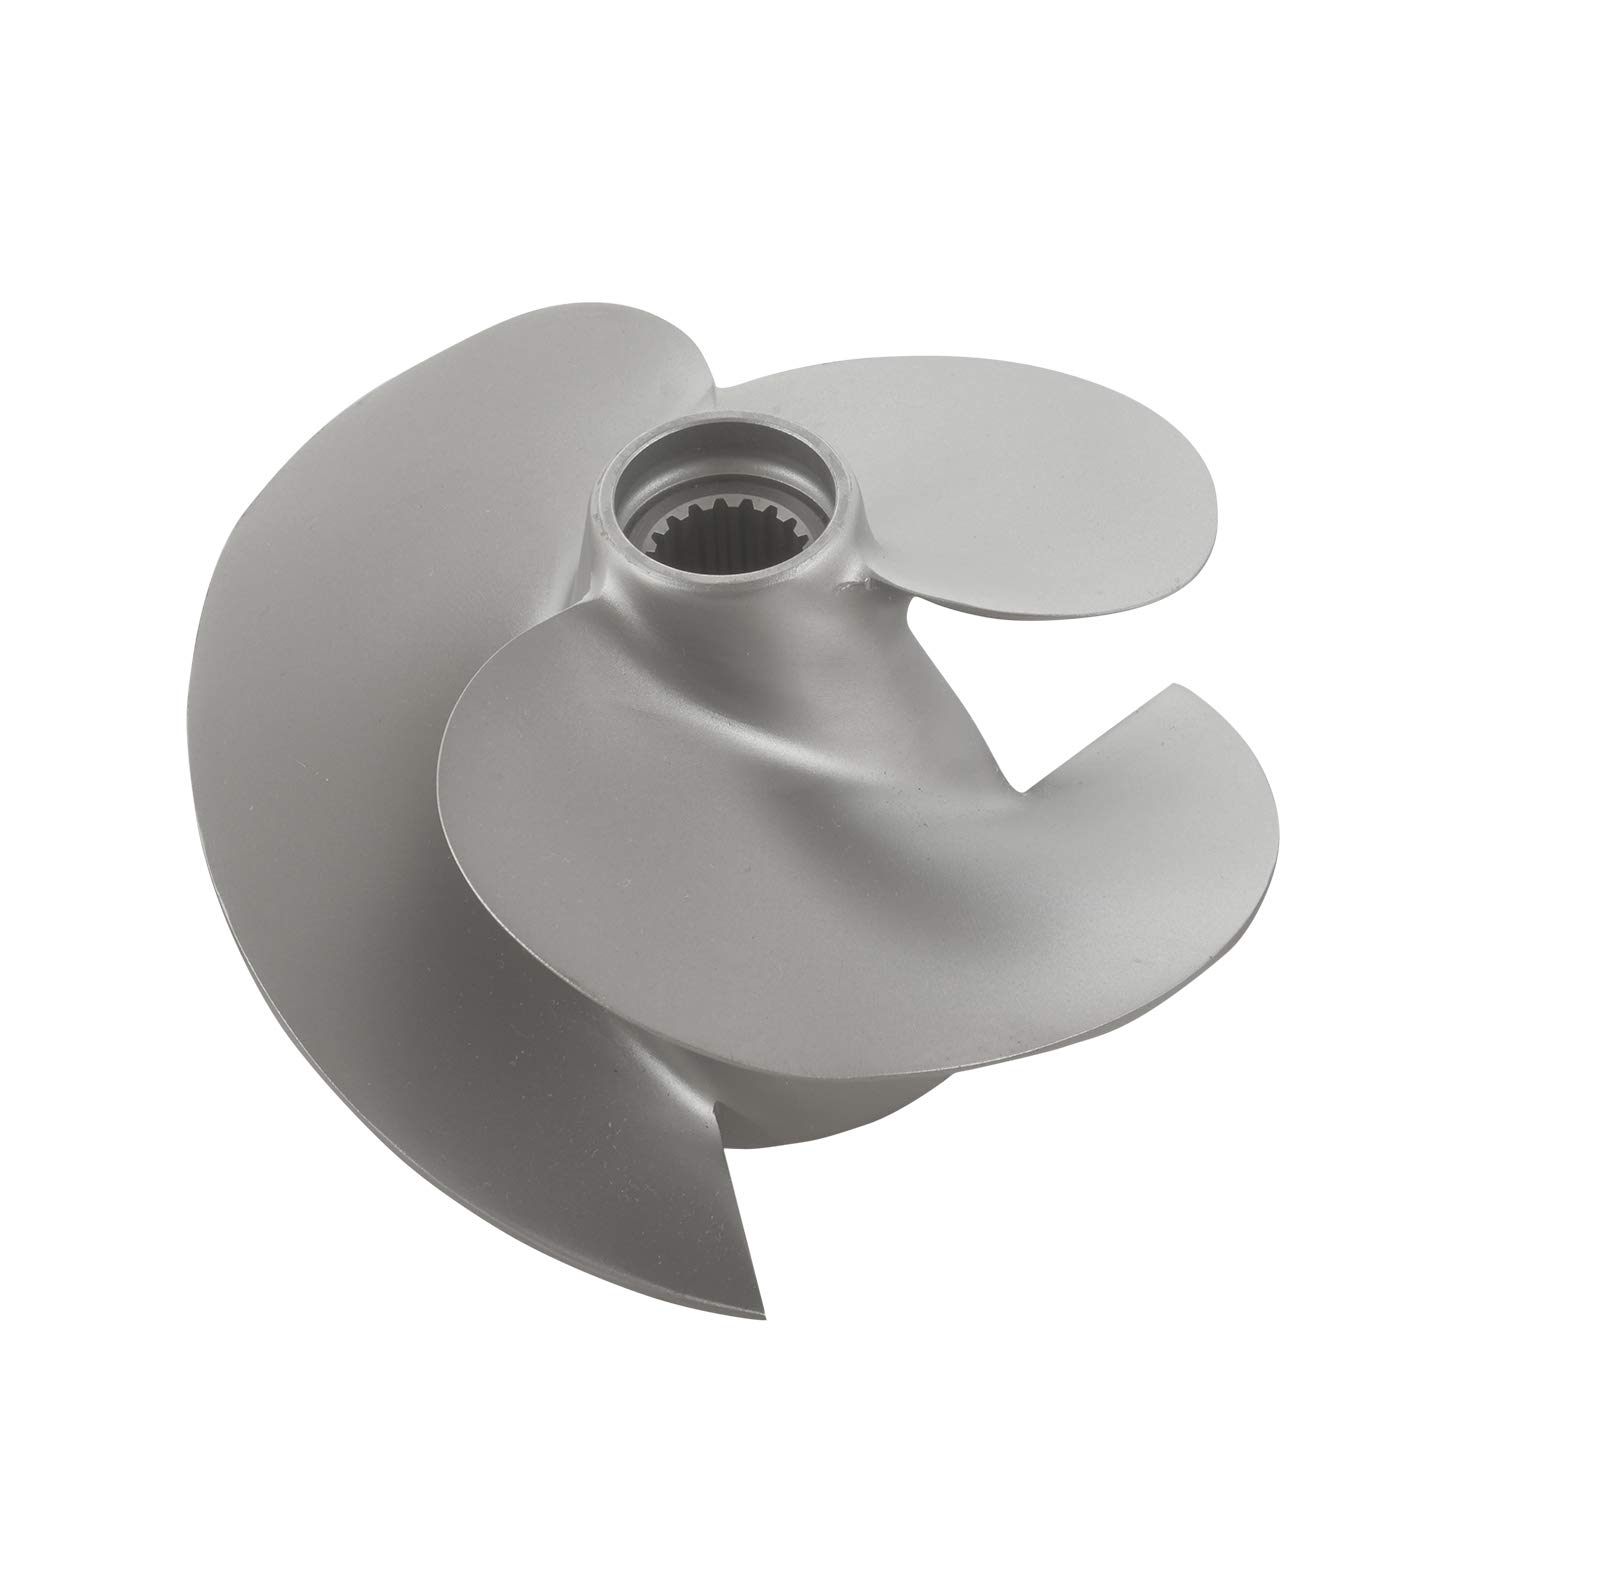 Sea-Doo GS/GTI 1999 2000 2001 Impeller Kit by Impeller Solutions (Image #2)